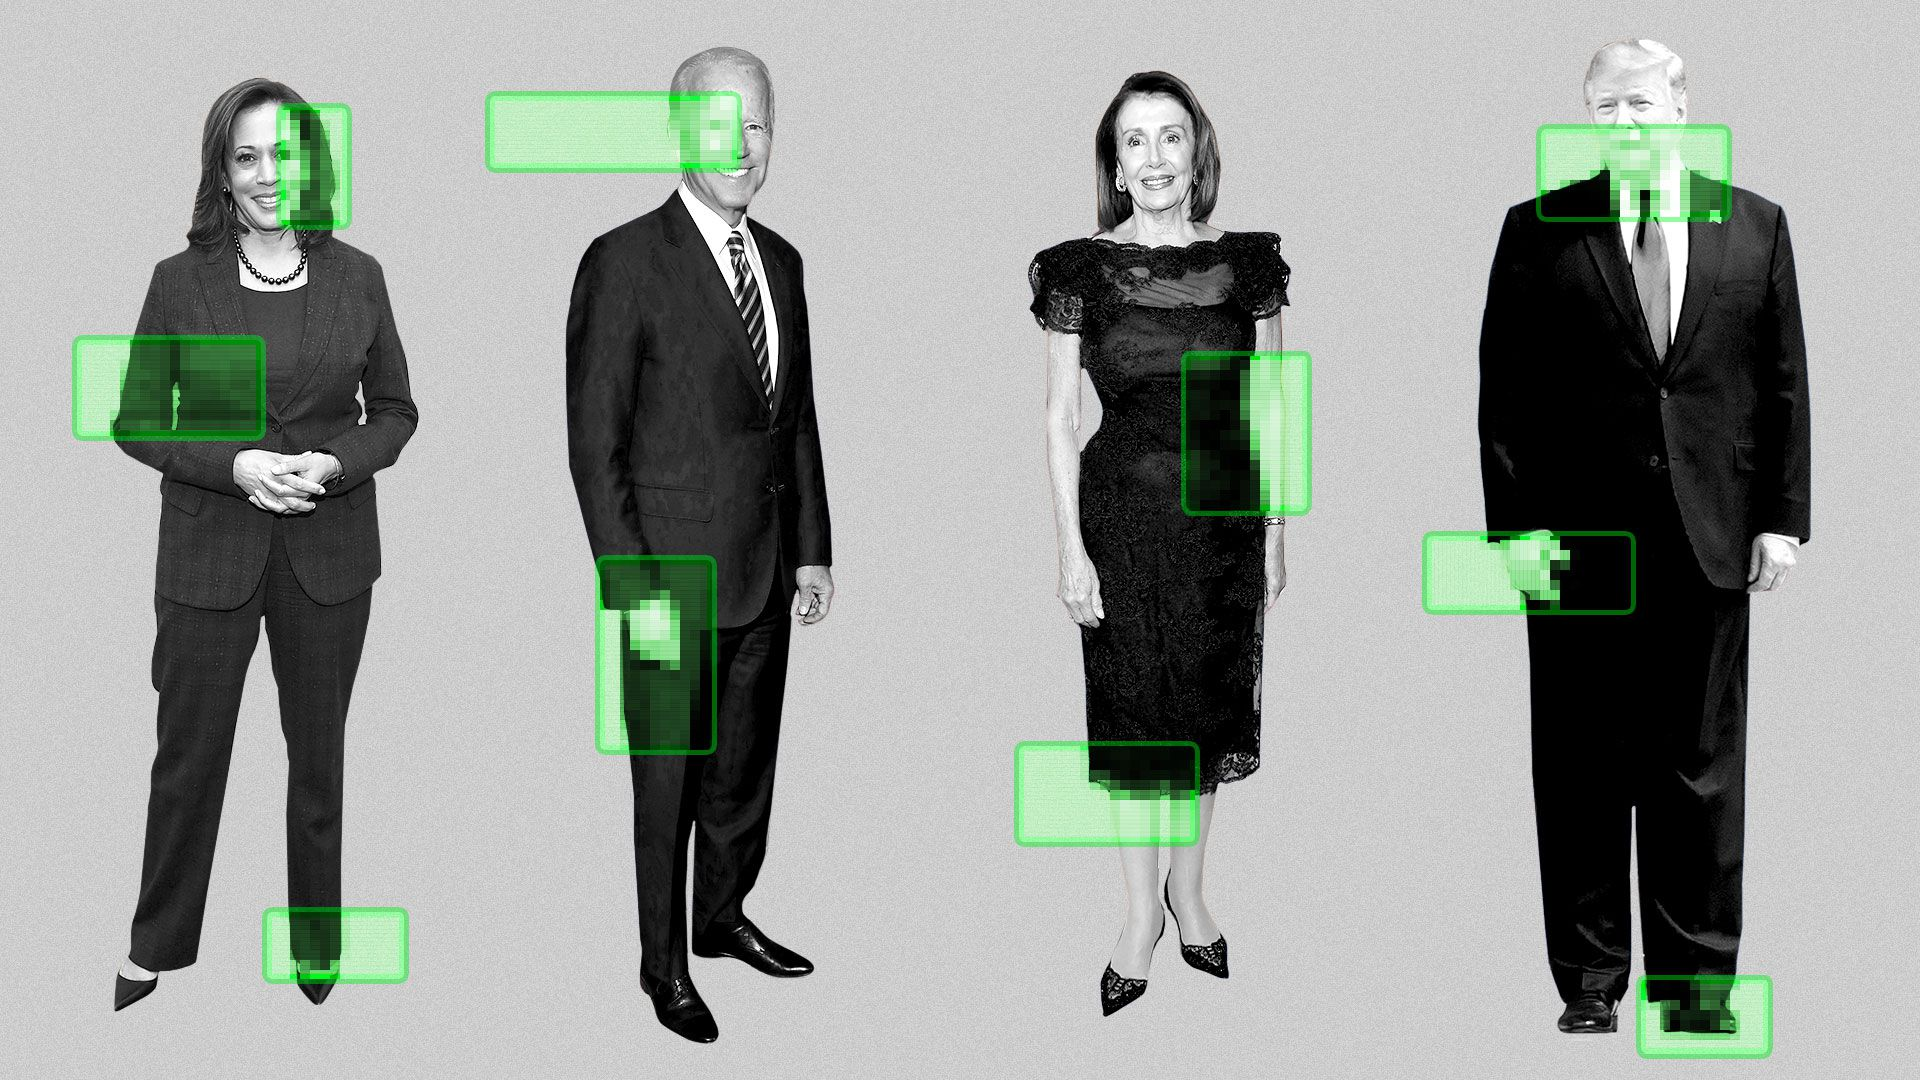 Illustration of Kamala Harris, Joe Biden, Nancy Pelosi and President Trump with various areas highlighted with scan lines and a pixel pattern